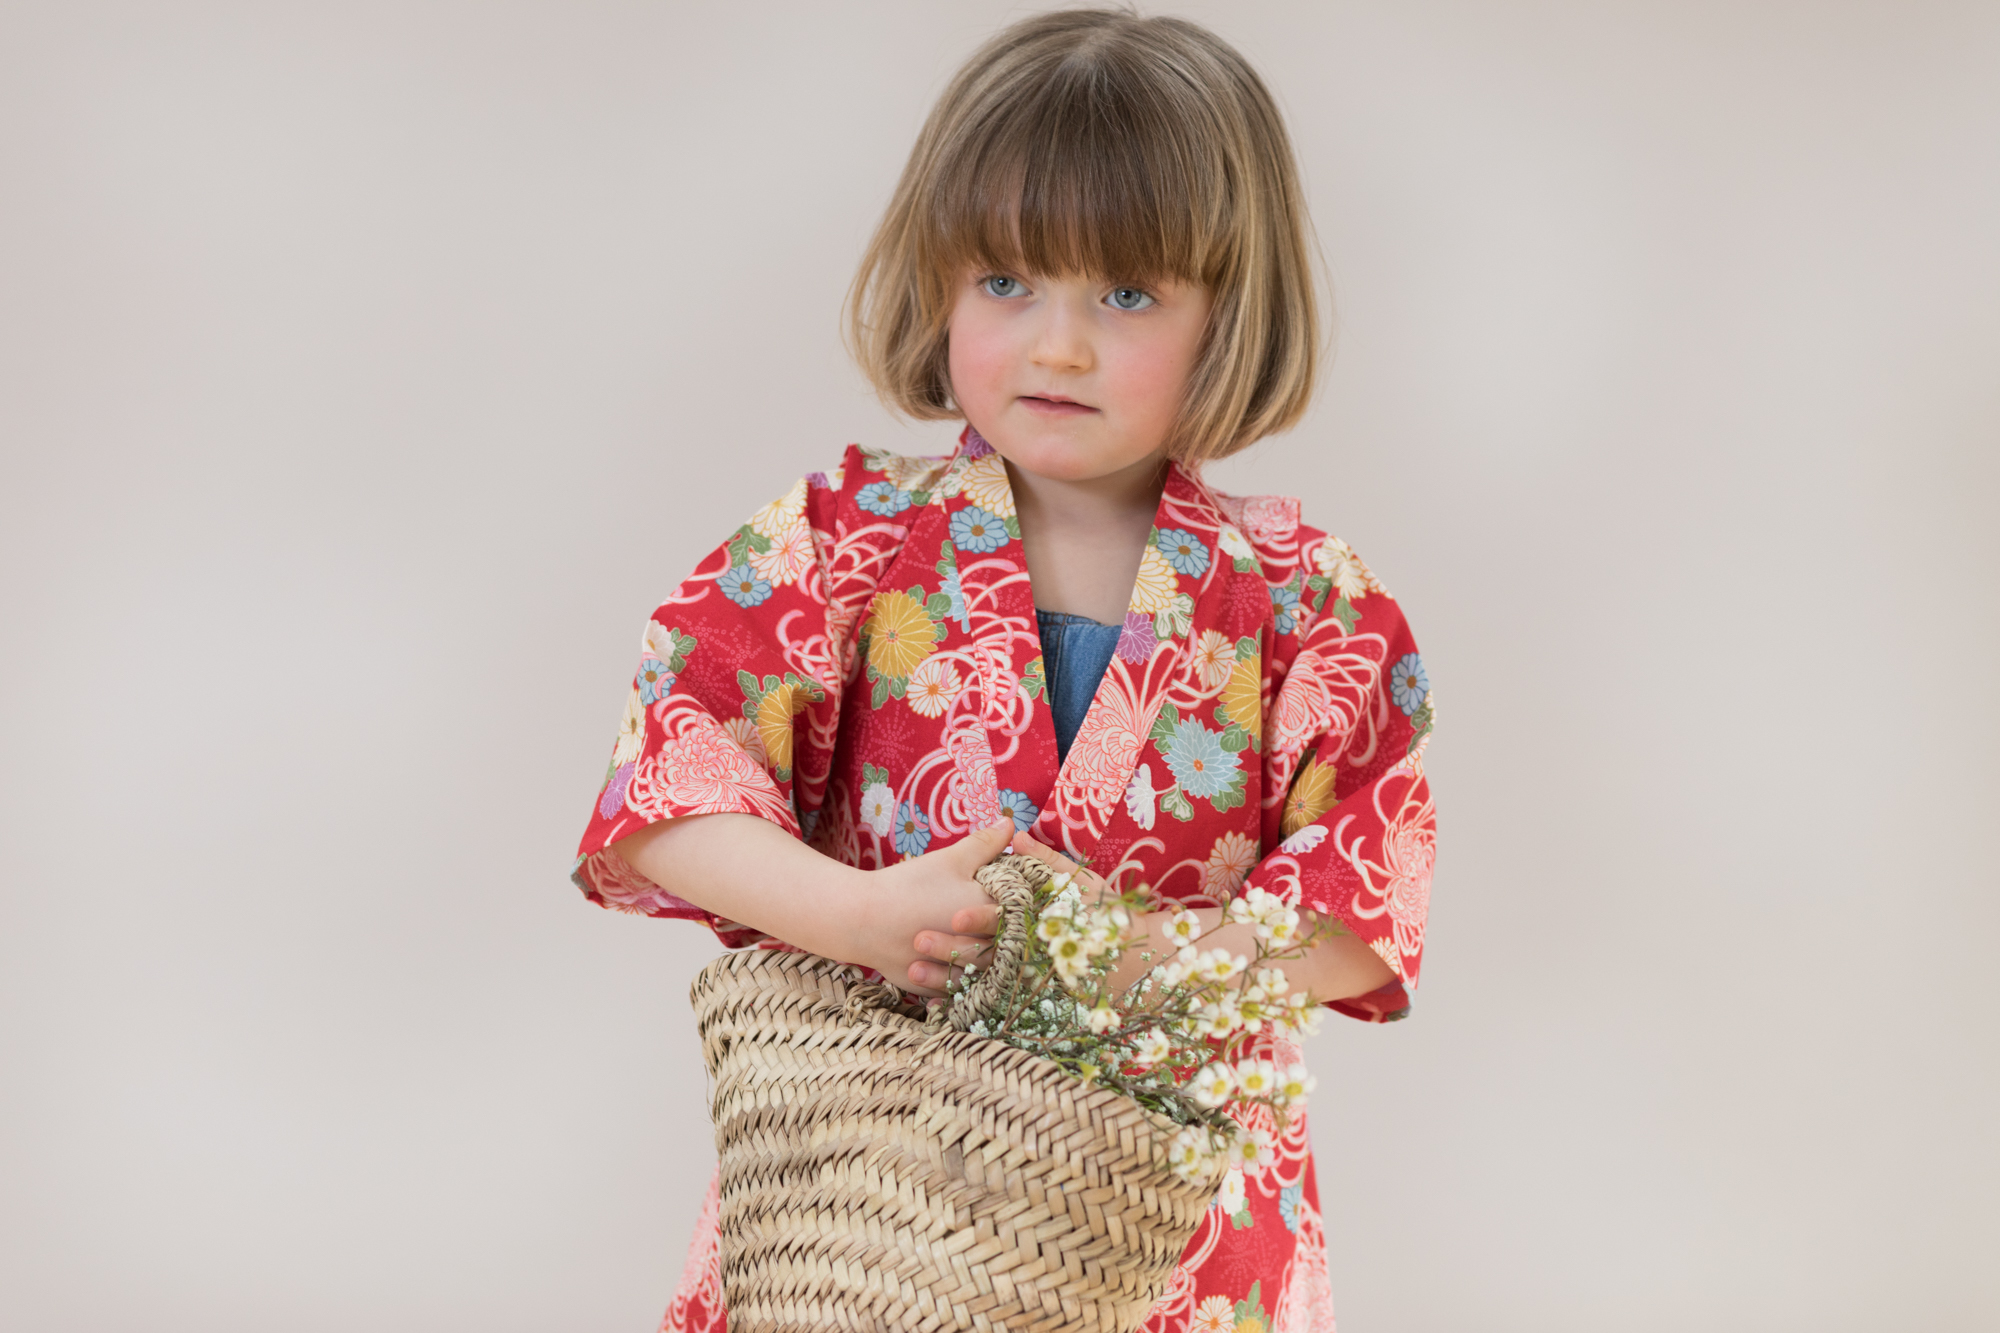 childrens fashion and editorial photographer London